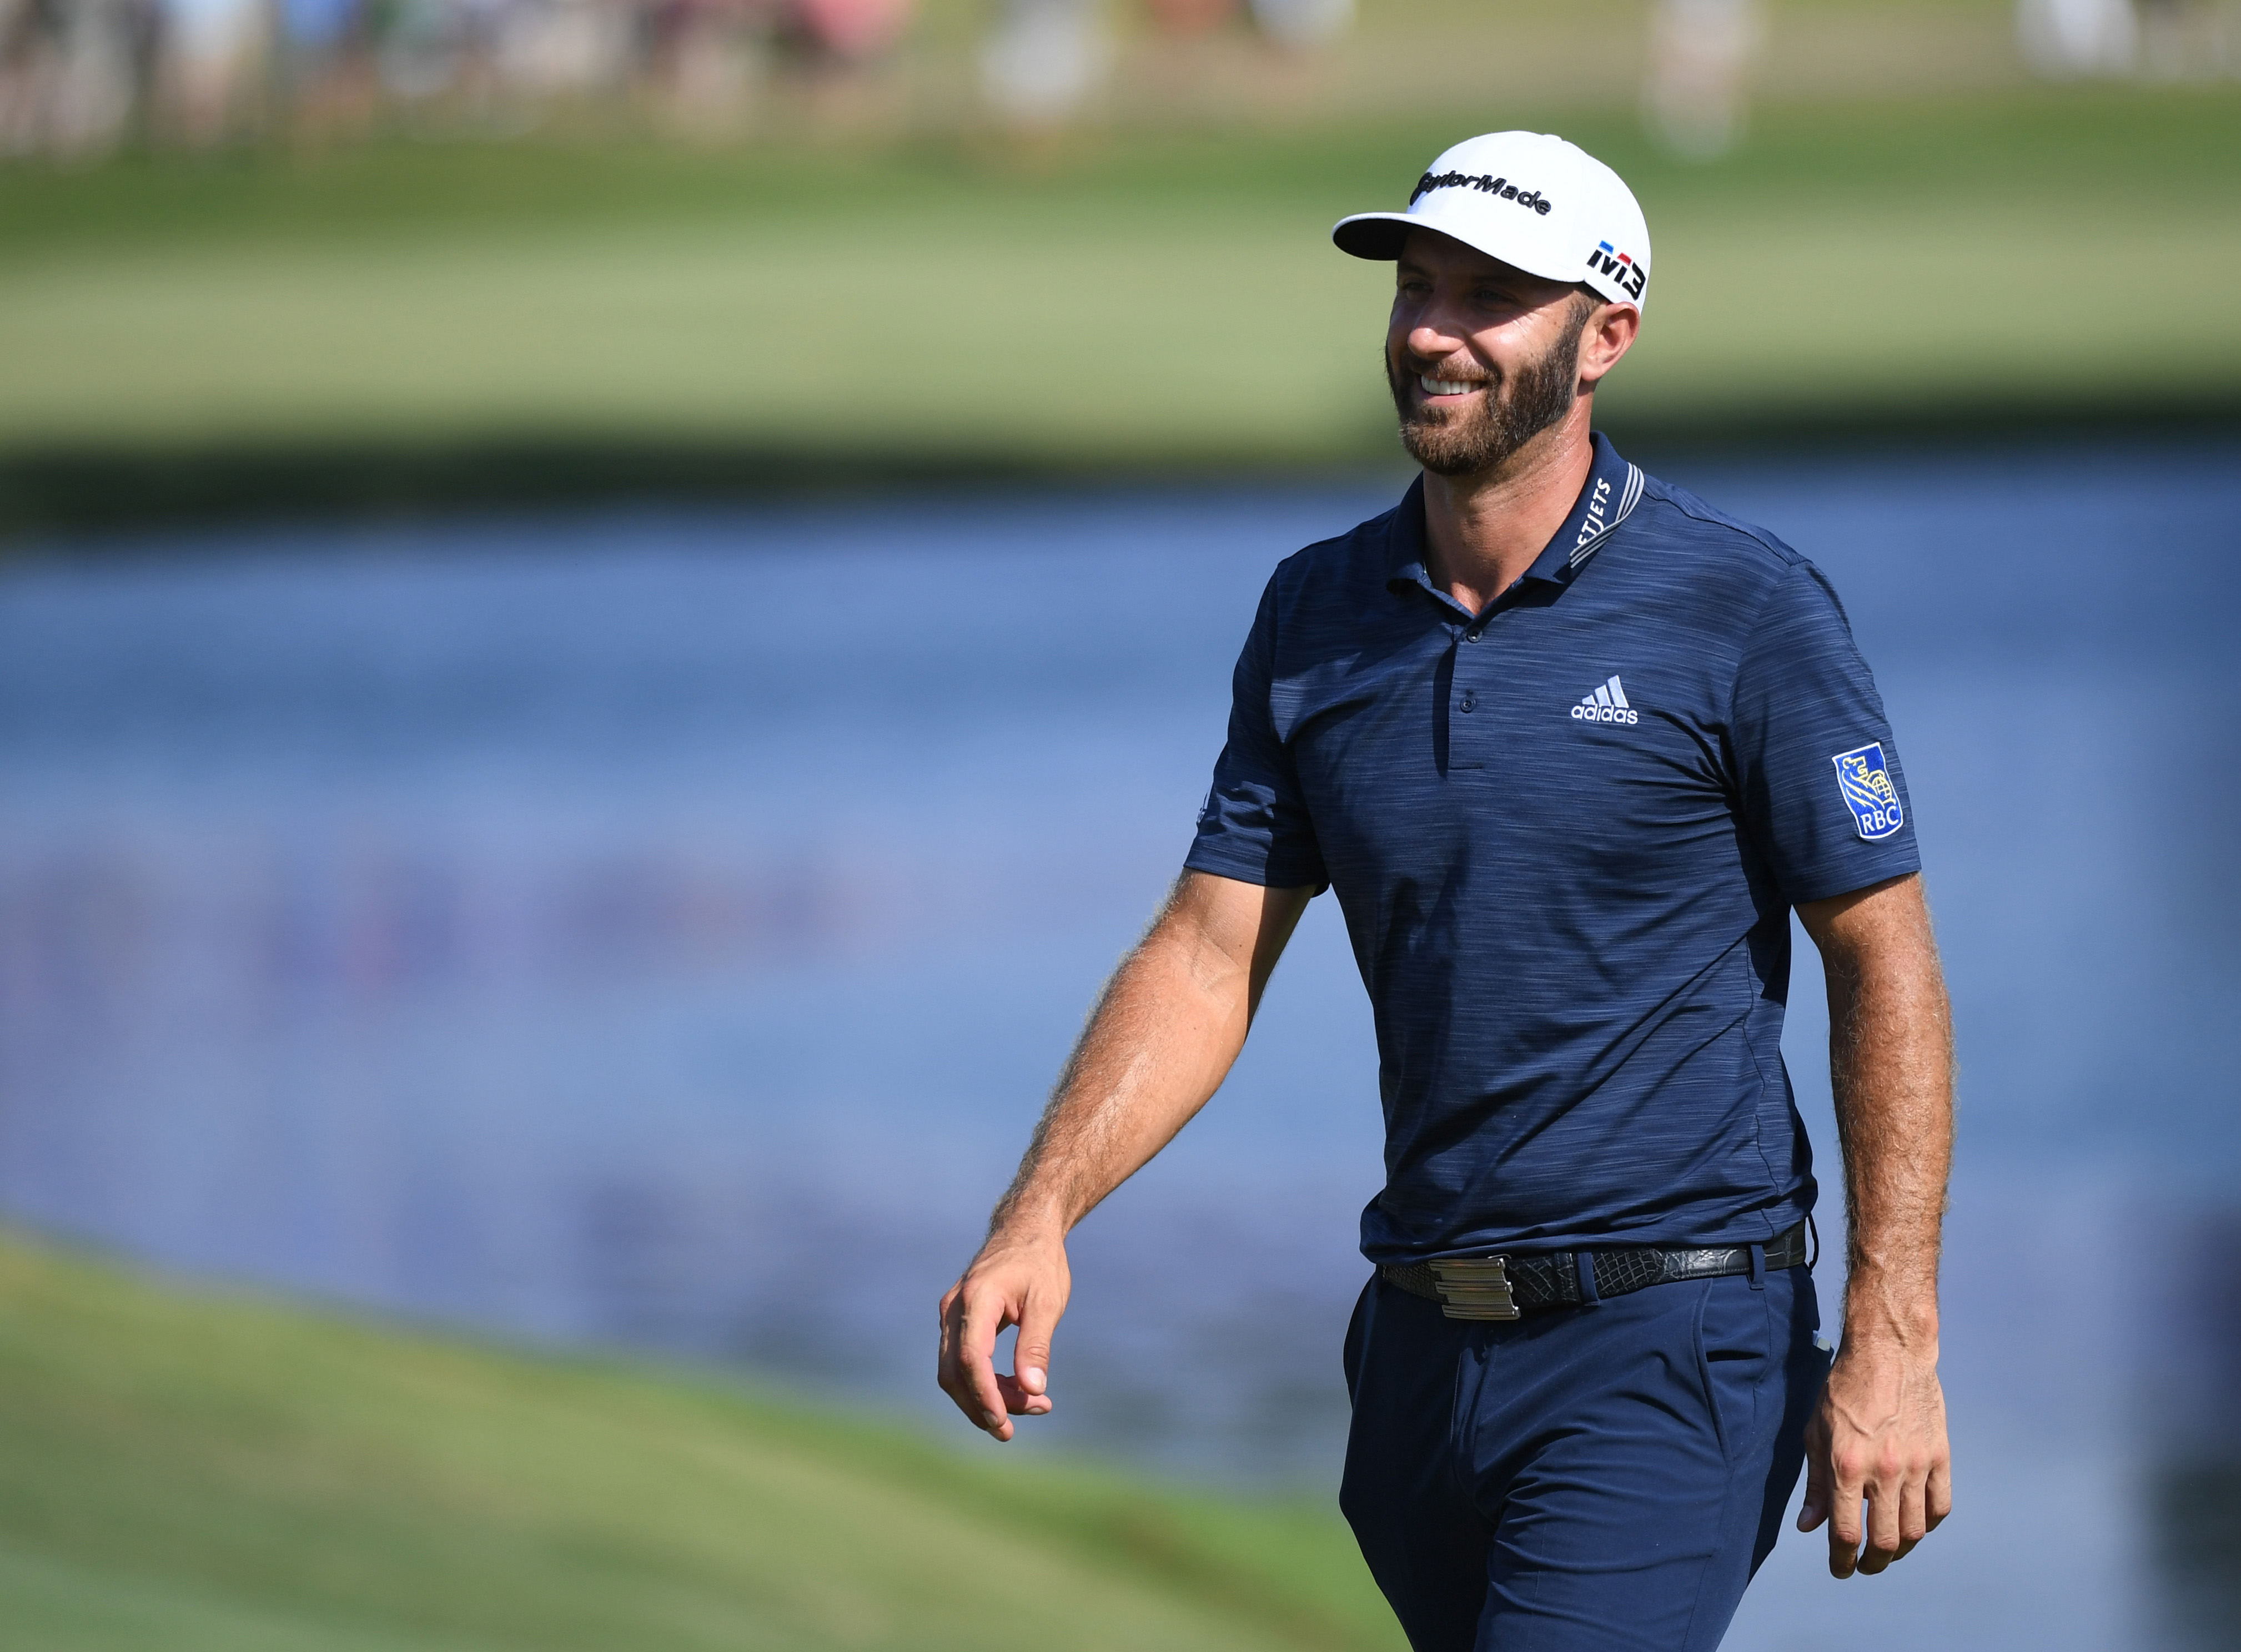 Dustin Johnson, Sophia Popov headline a remarkable weekend in golf